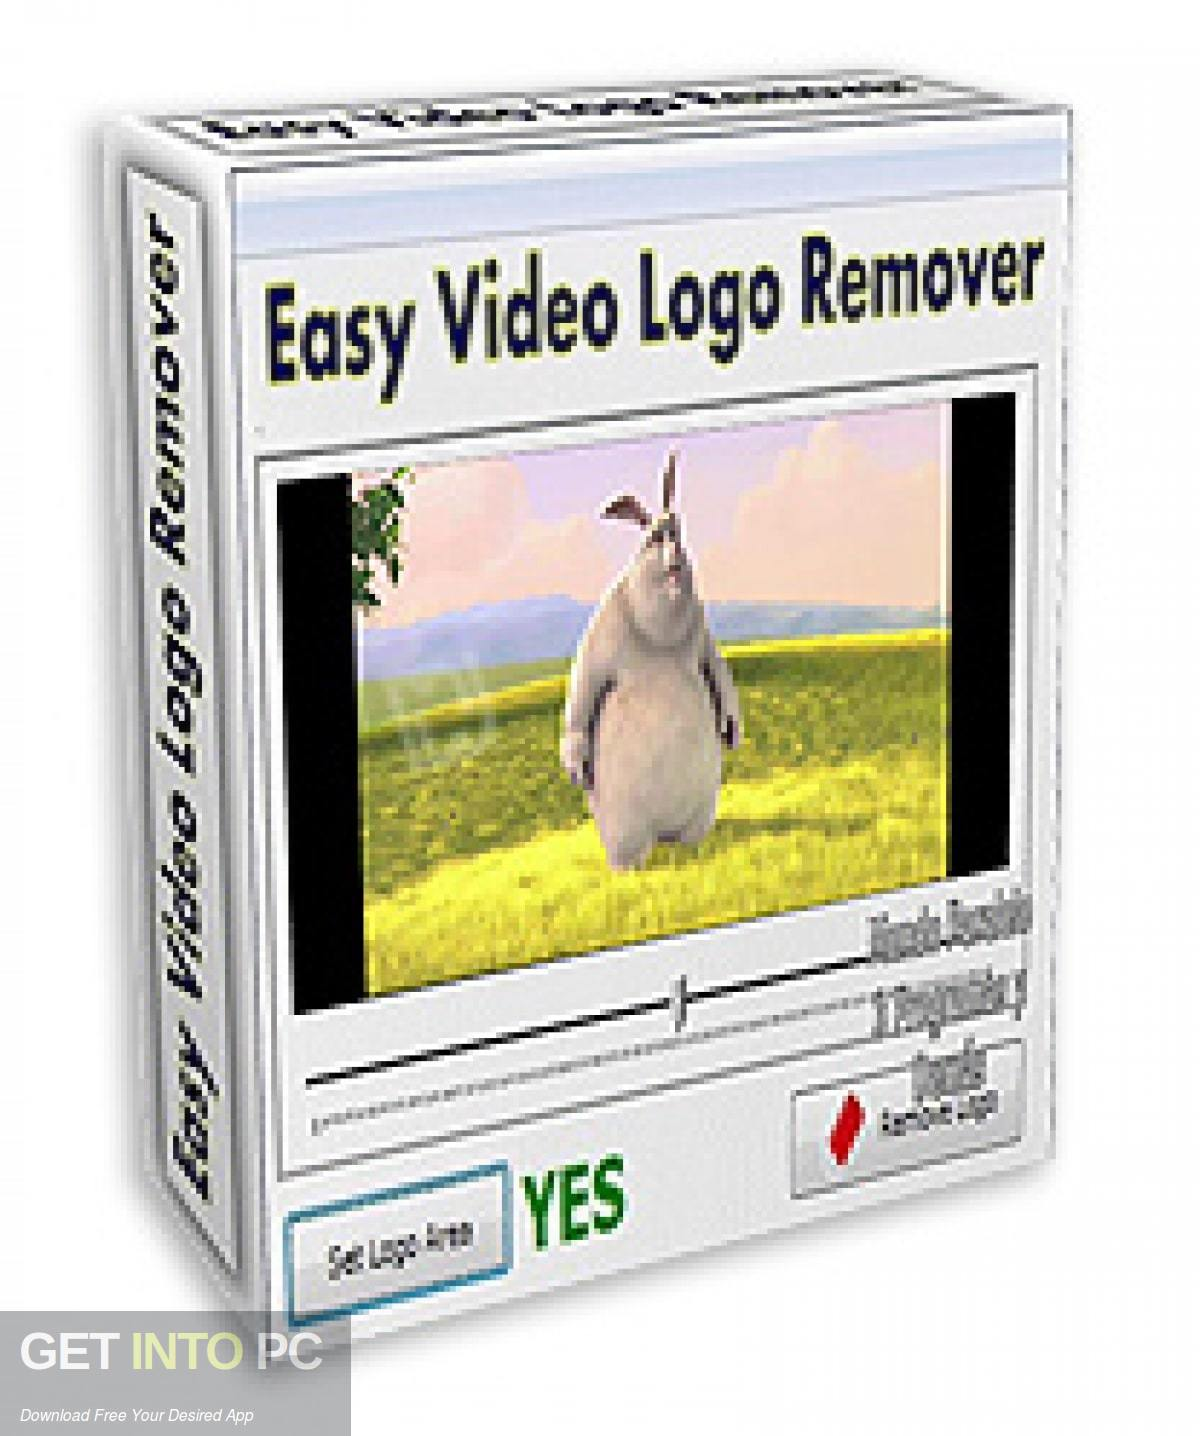 Easy Video Logo Remover Free Download